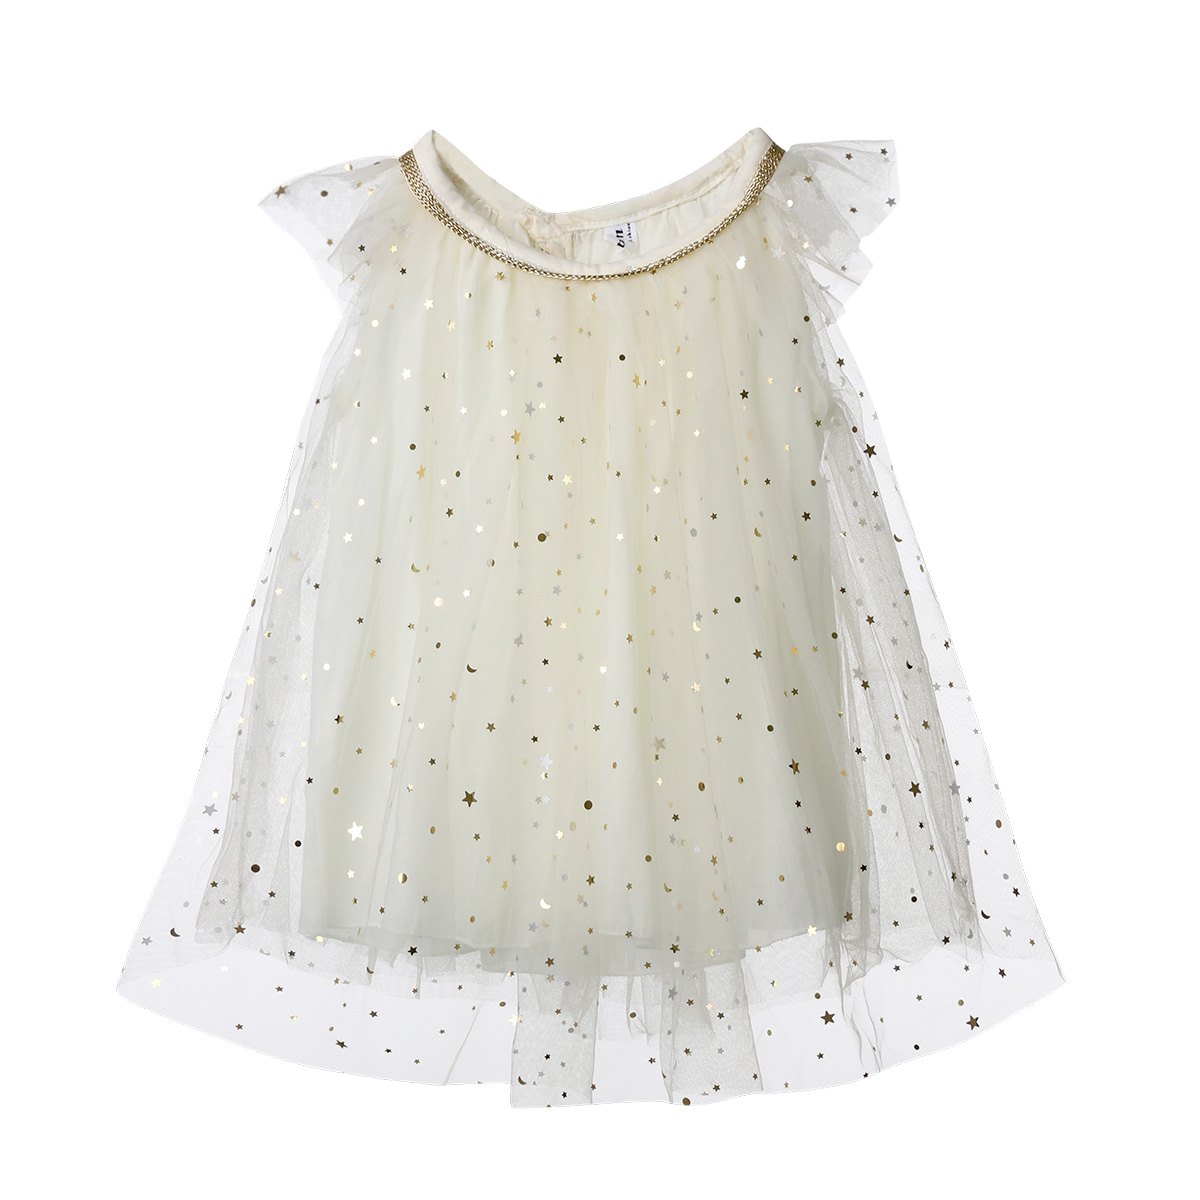 84f40d33fb New Flower Girl Clothing Princess Dress Tutu Tiered Sequined Wedding Party  Summer Cute Kid Tulle Dresses